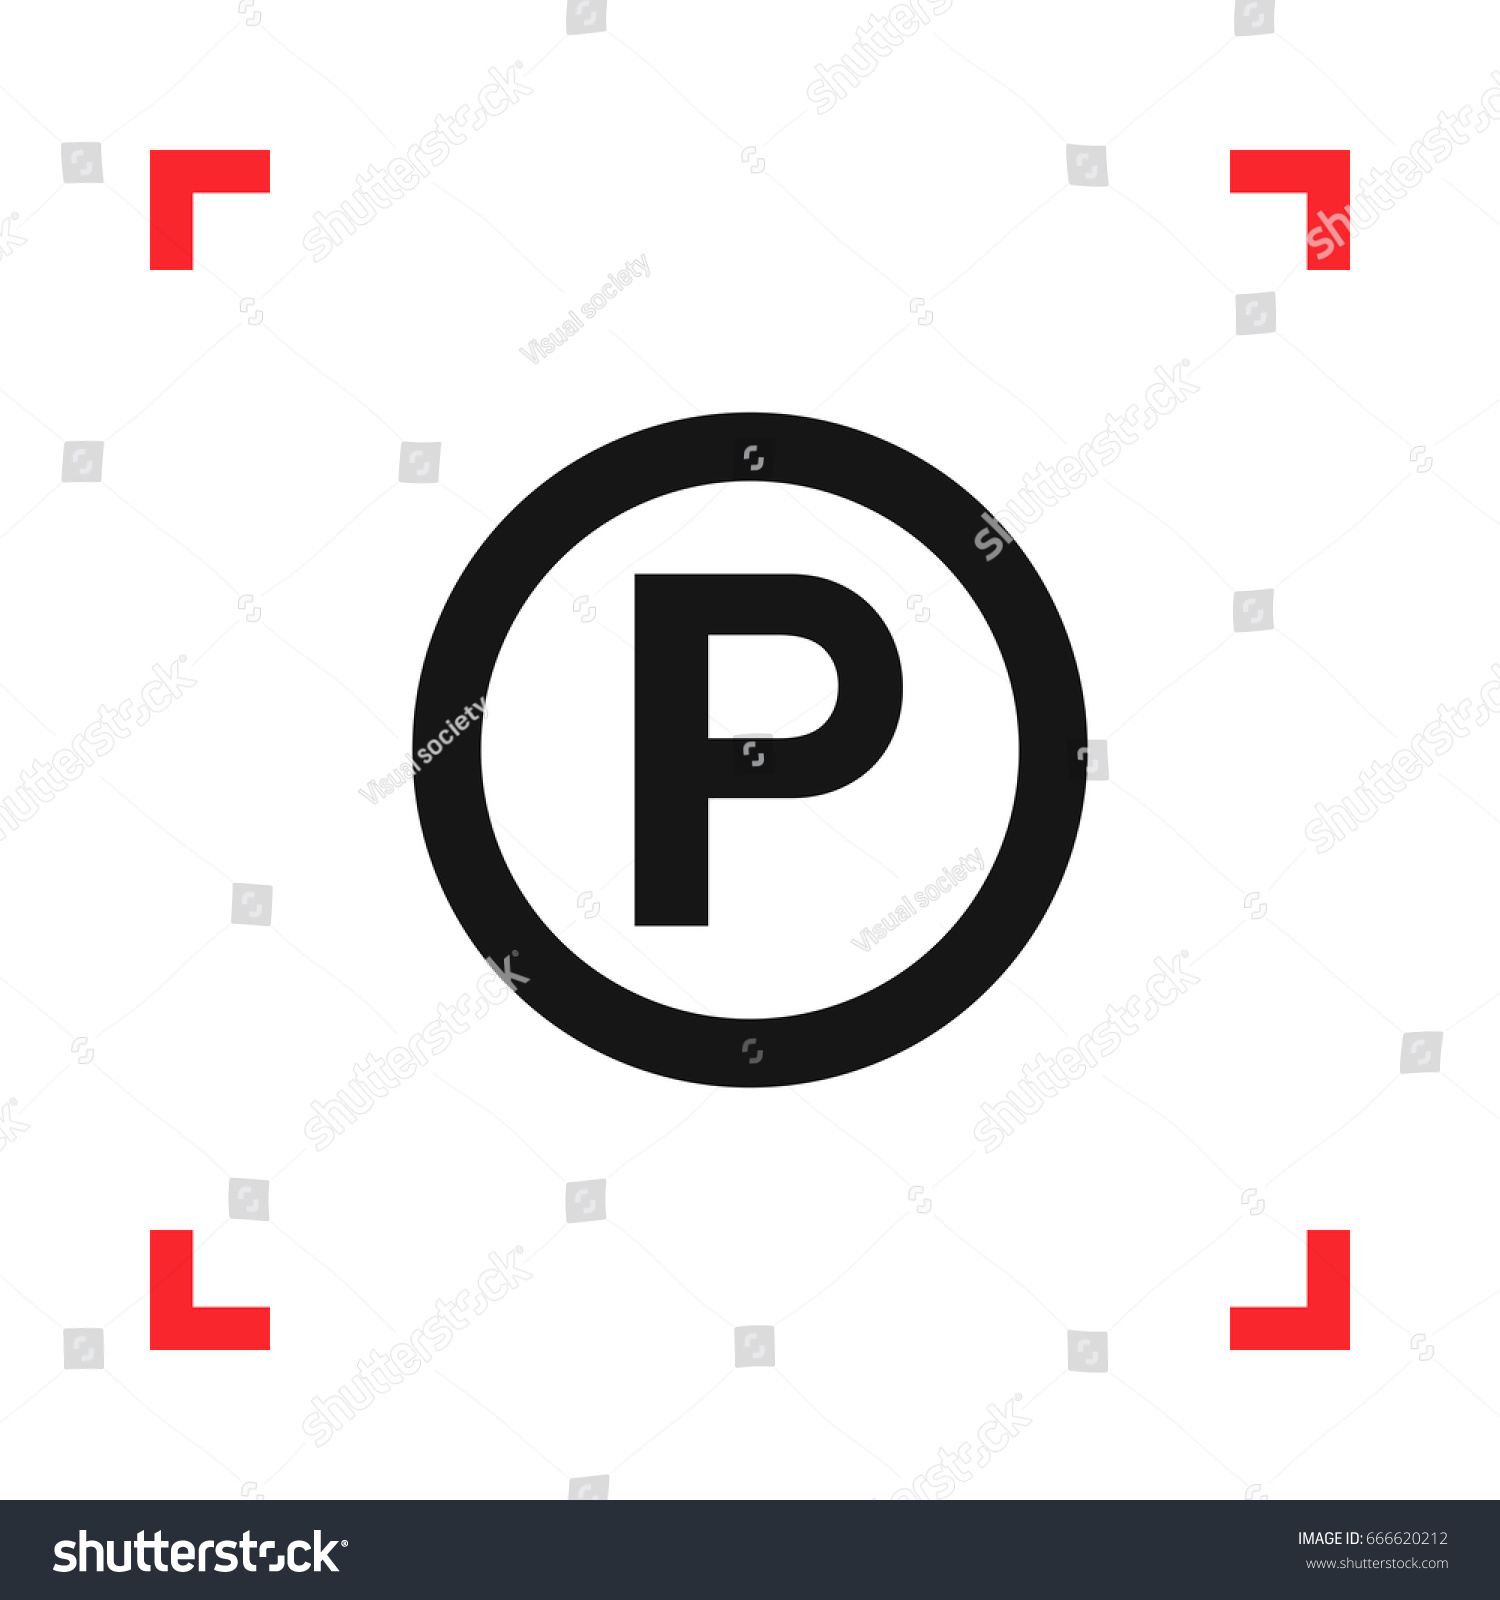 P sound recording copyright symbol red stock vector 666620212 p sound recording copyright symbol in a red viewfinder isolated on white background conceptual biocorpaavc